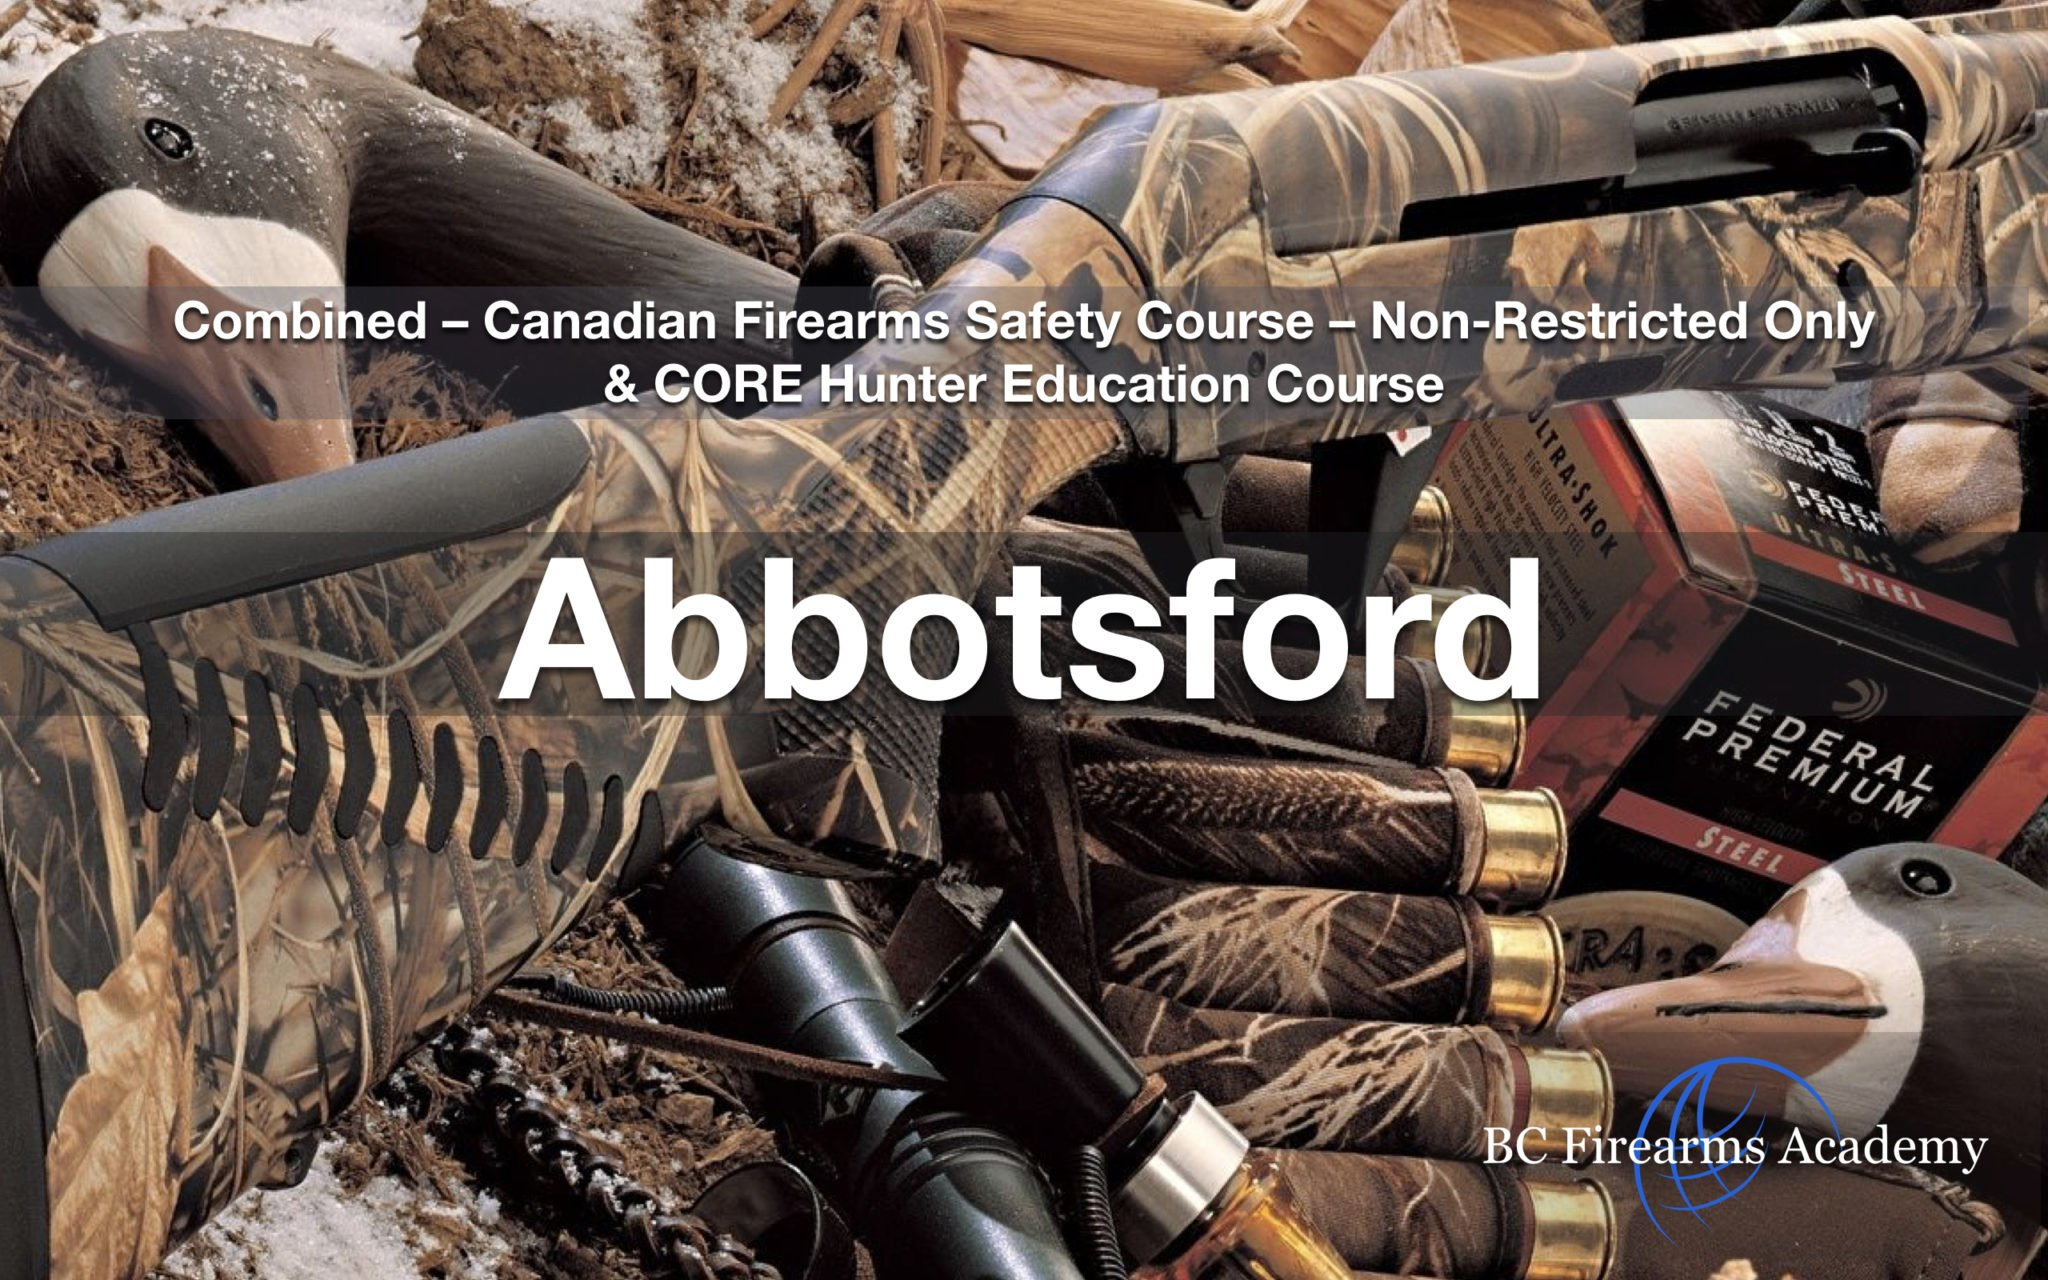 Cabela's Abbotsford Firearms & Hunting Courses & New Store